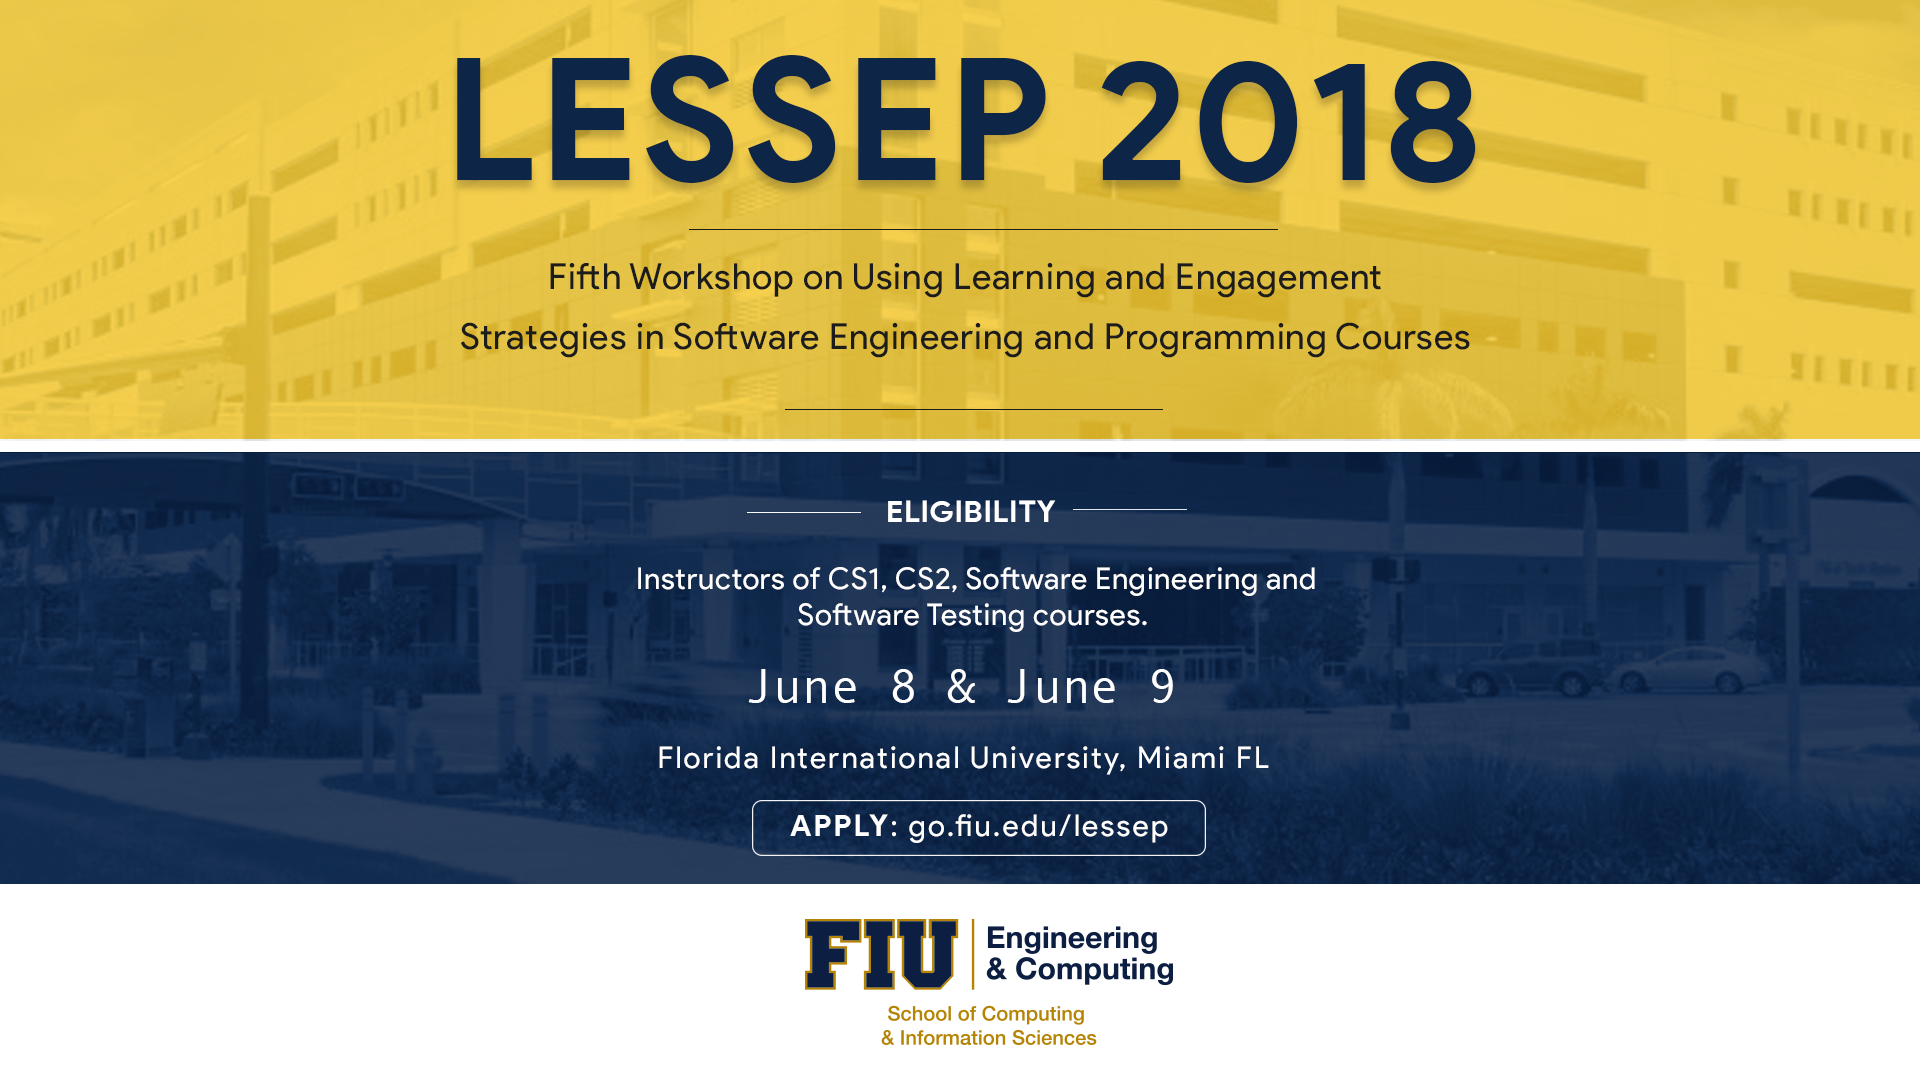 Flyer of LESSEP 2018